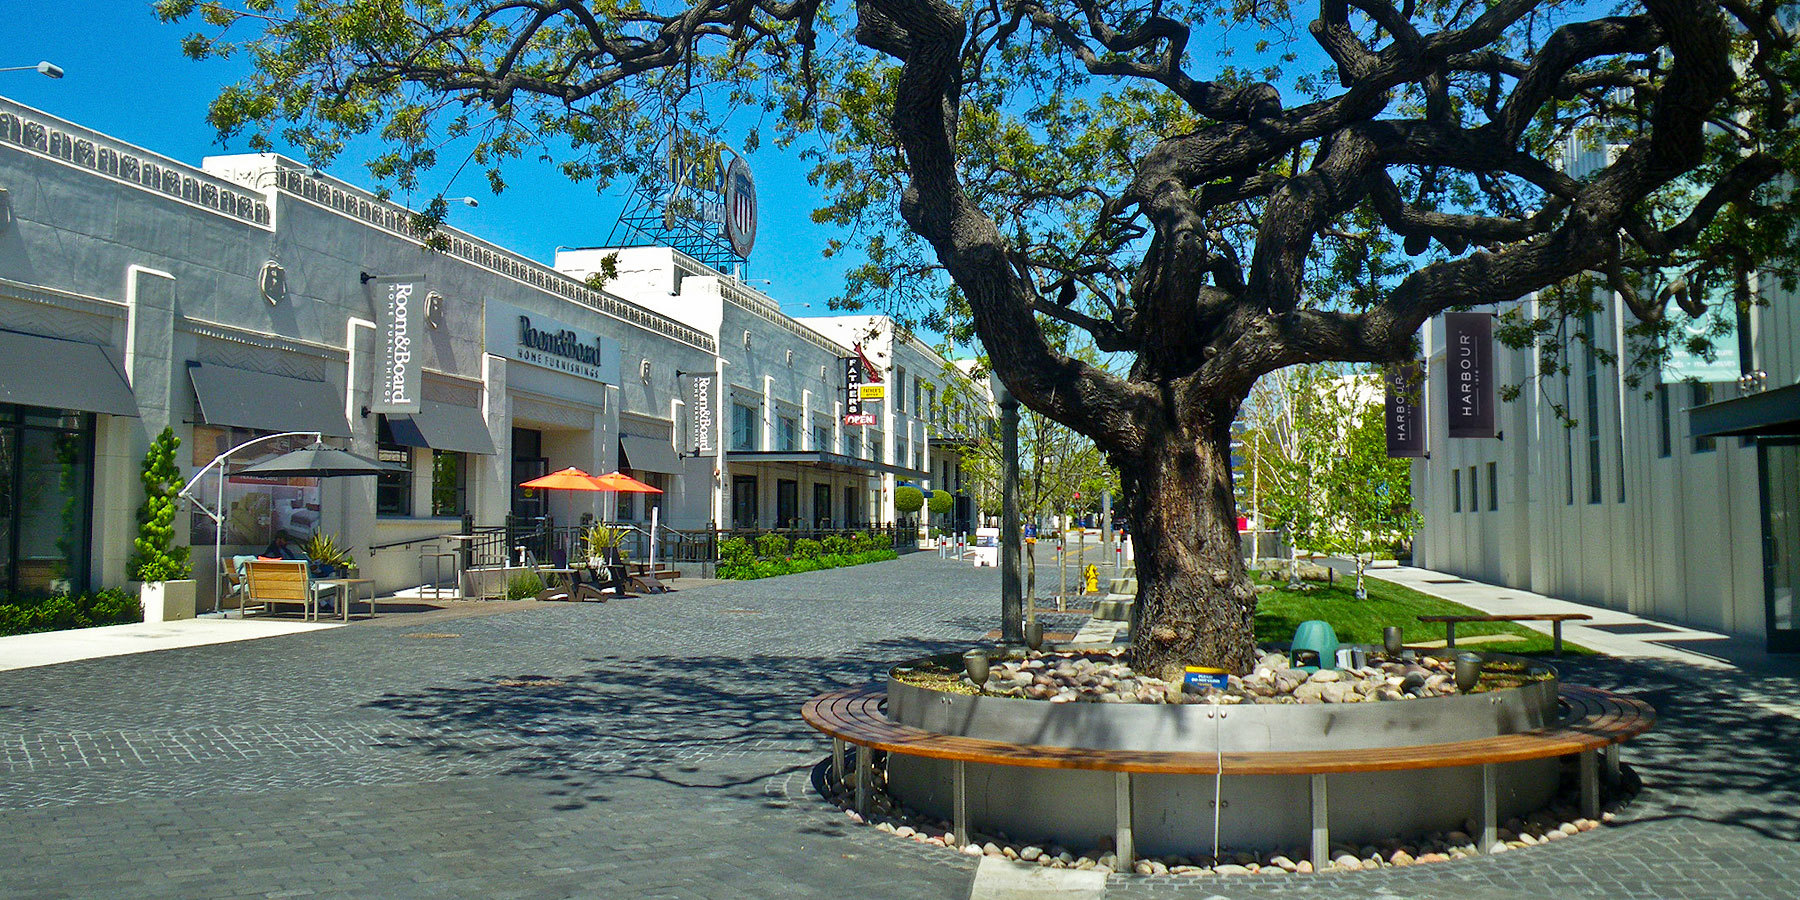 Things to do in Culver City